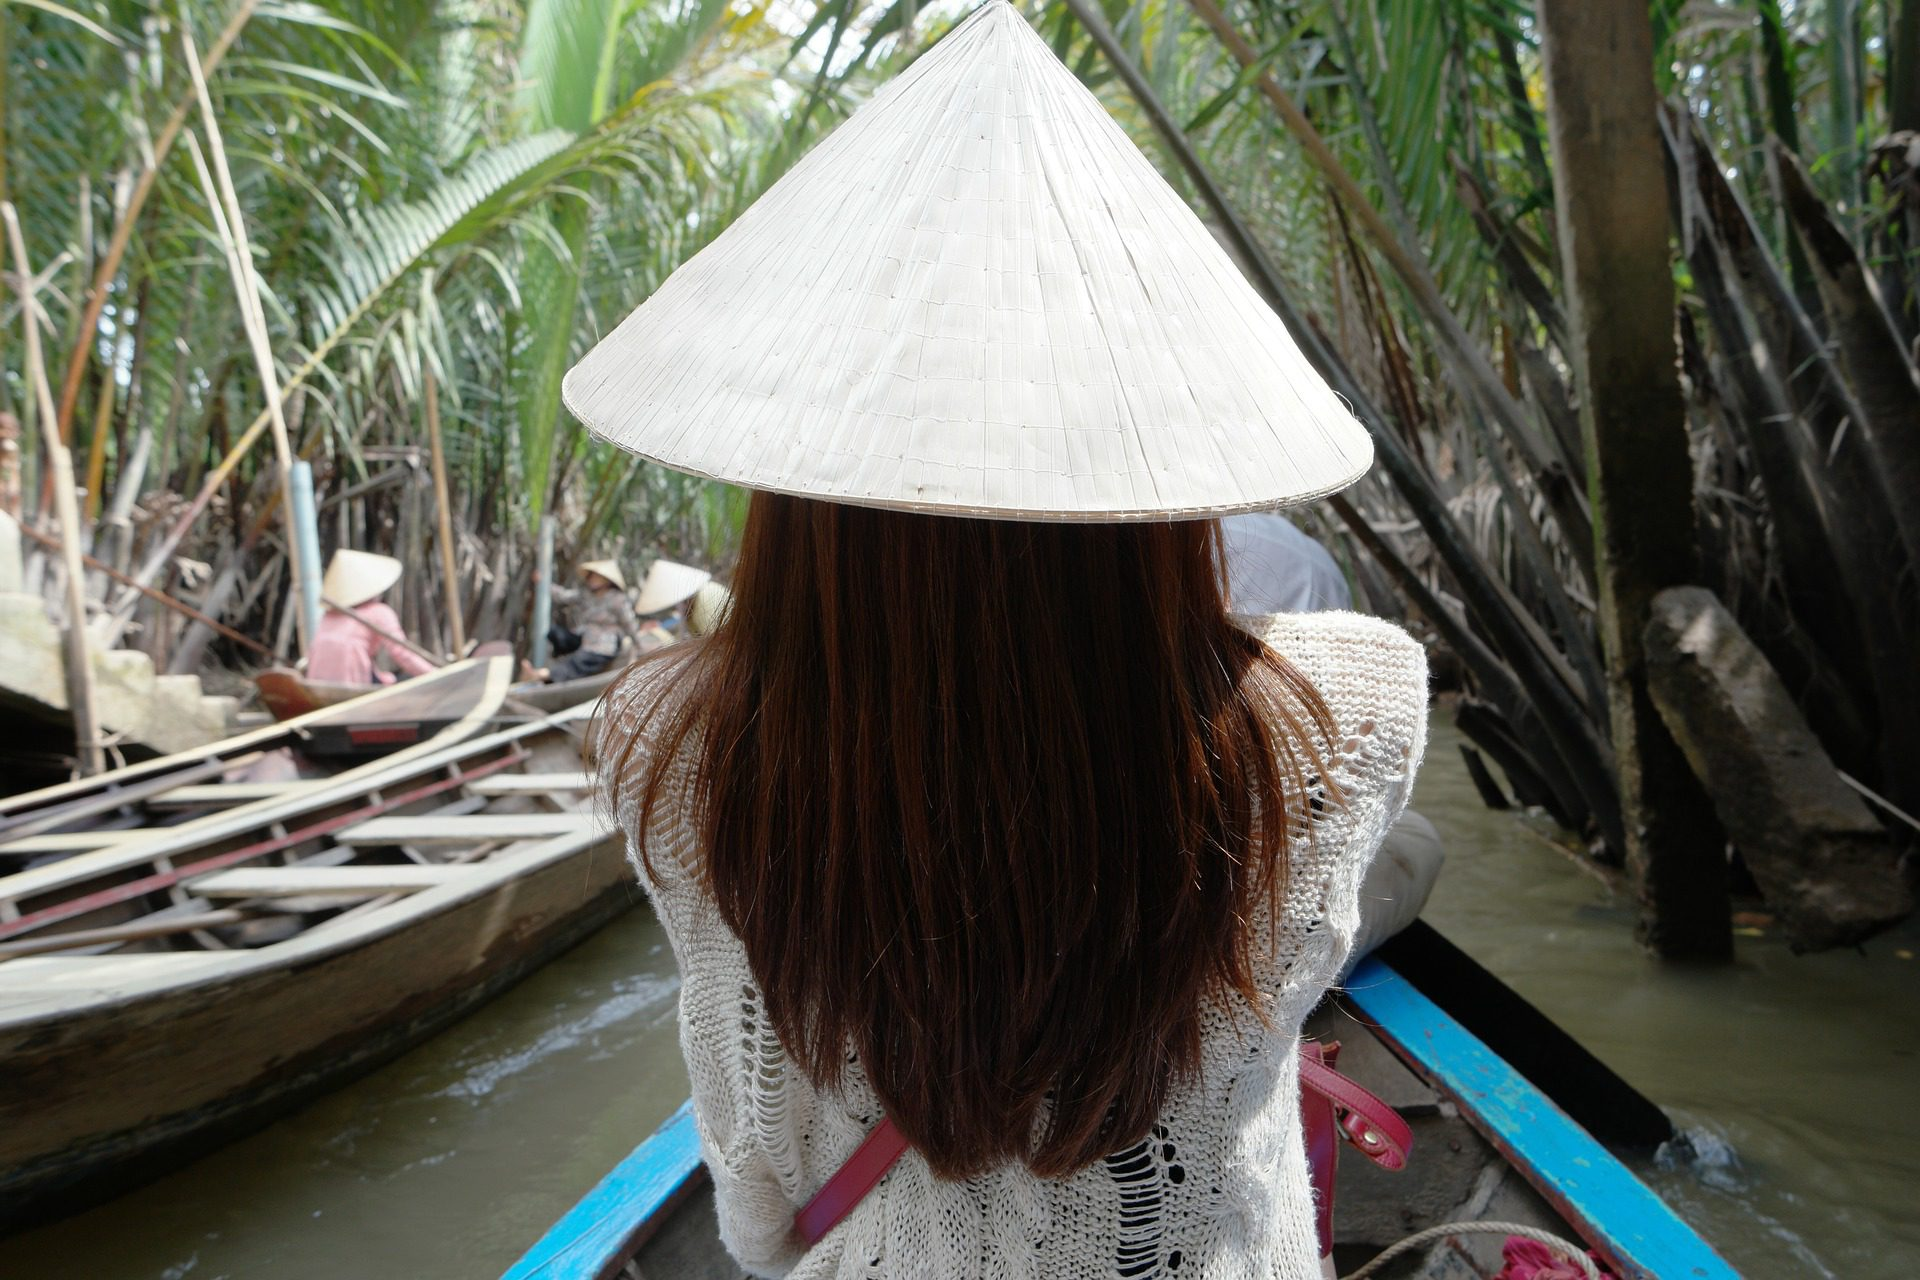 Exploitation, Violence, and Suicide Risk Among Child and Adolescent Survivors of Human Trafficking in the Greater Mekong Subregion